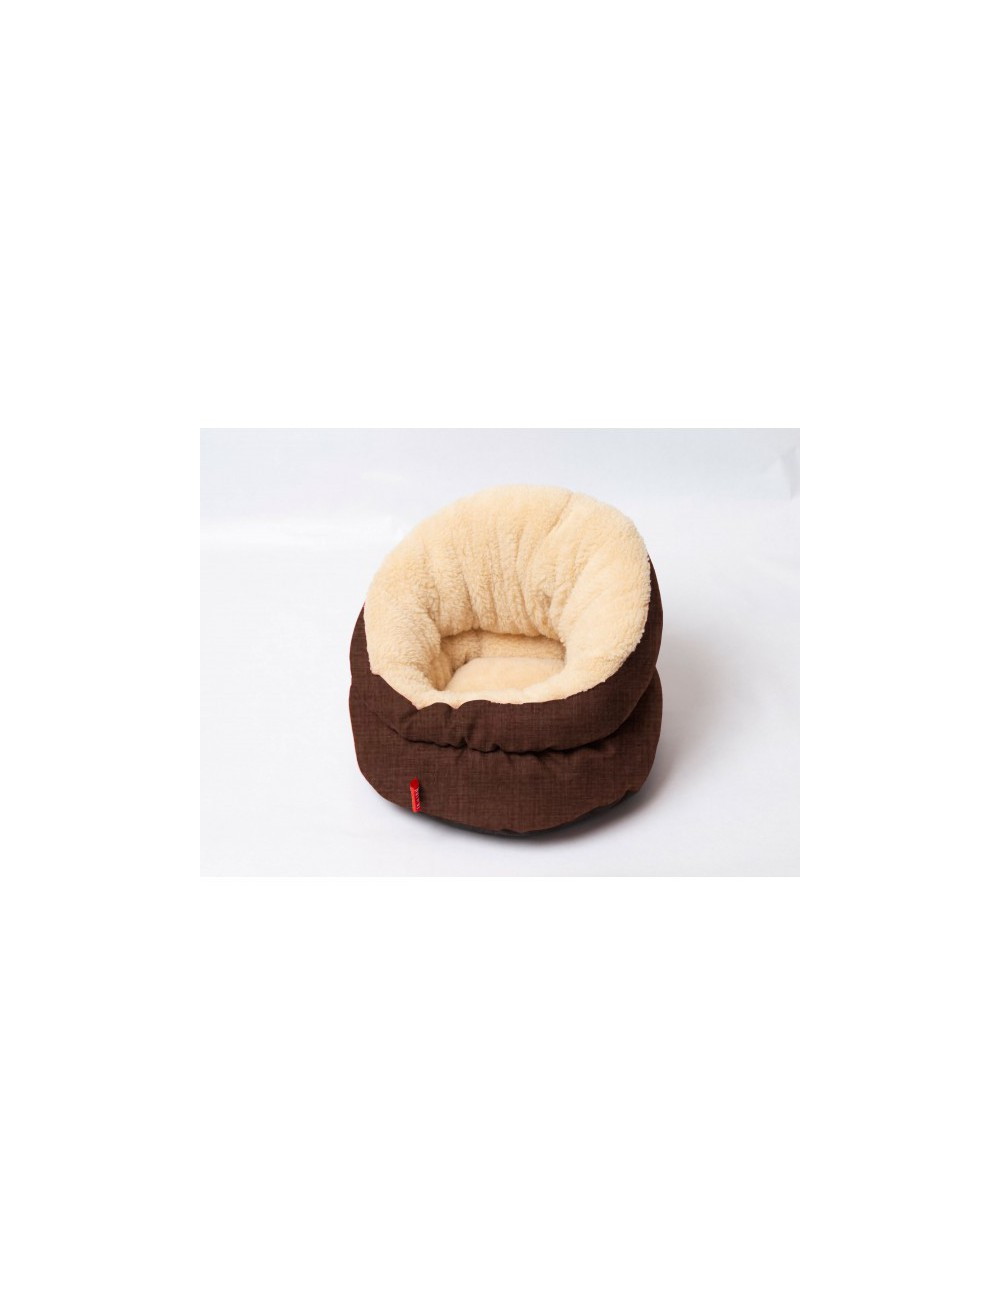 BENJI BED FOR CATS  Nuf Nuf